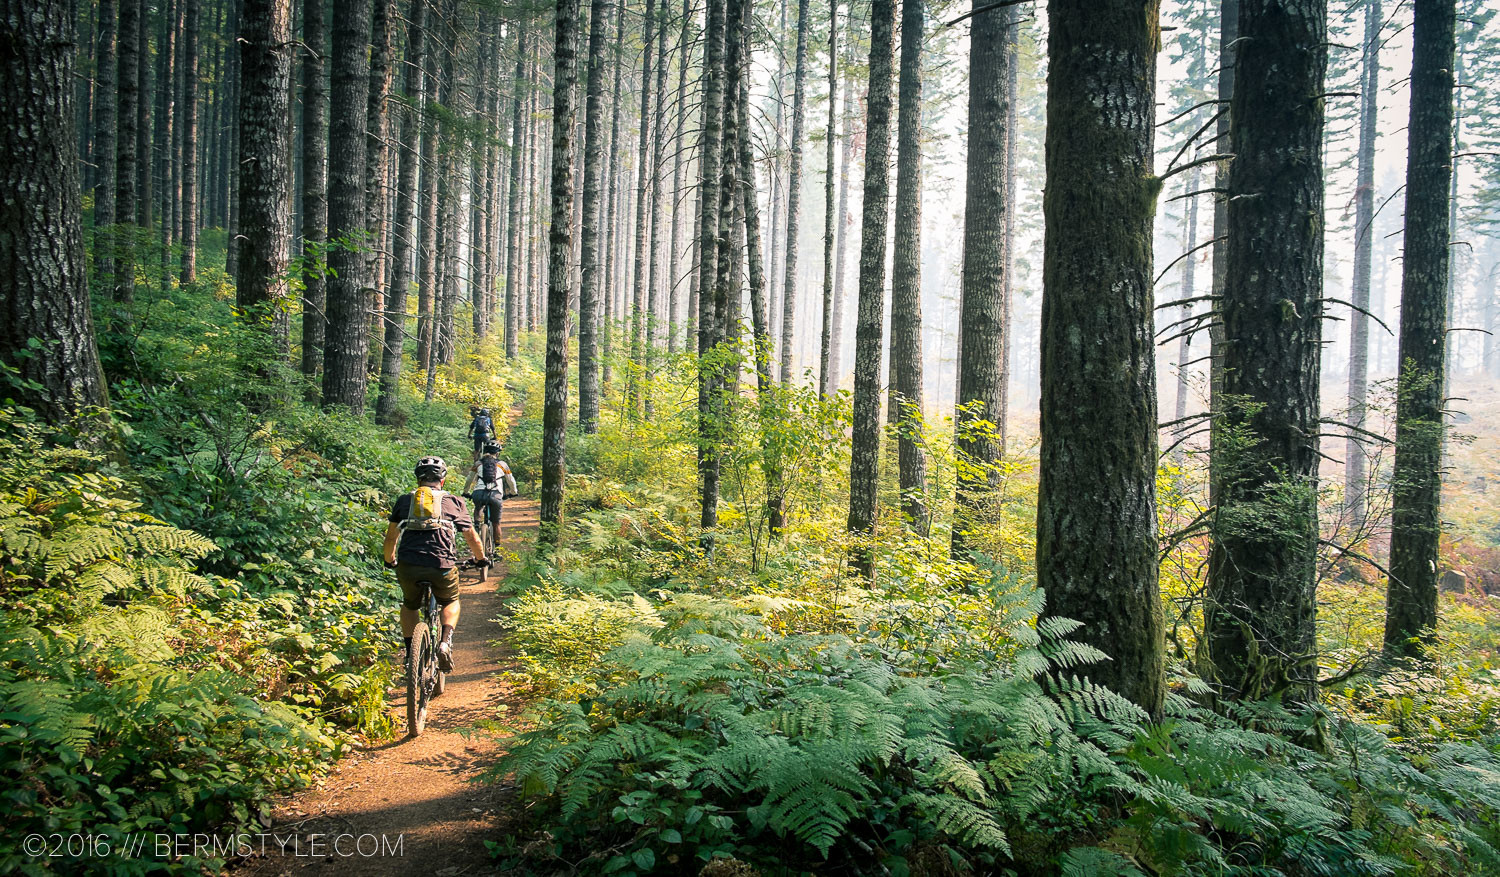 Portland Area Trails: The Browns Camp Loop